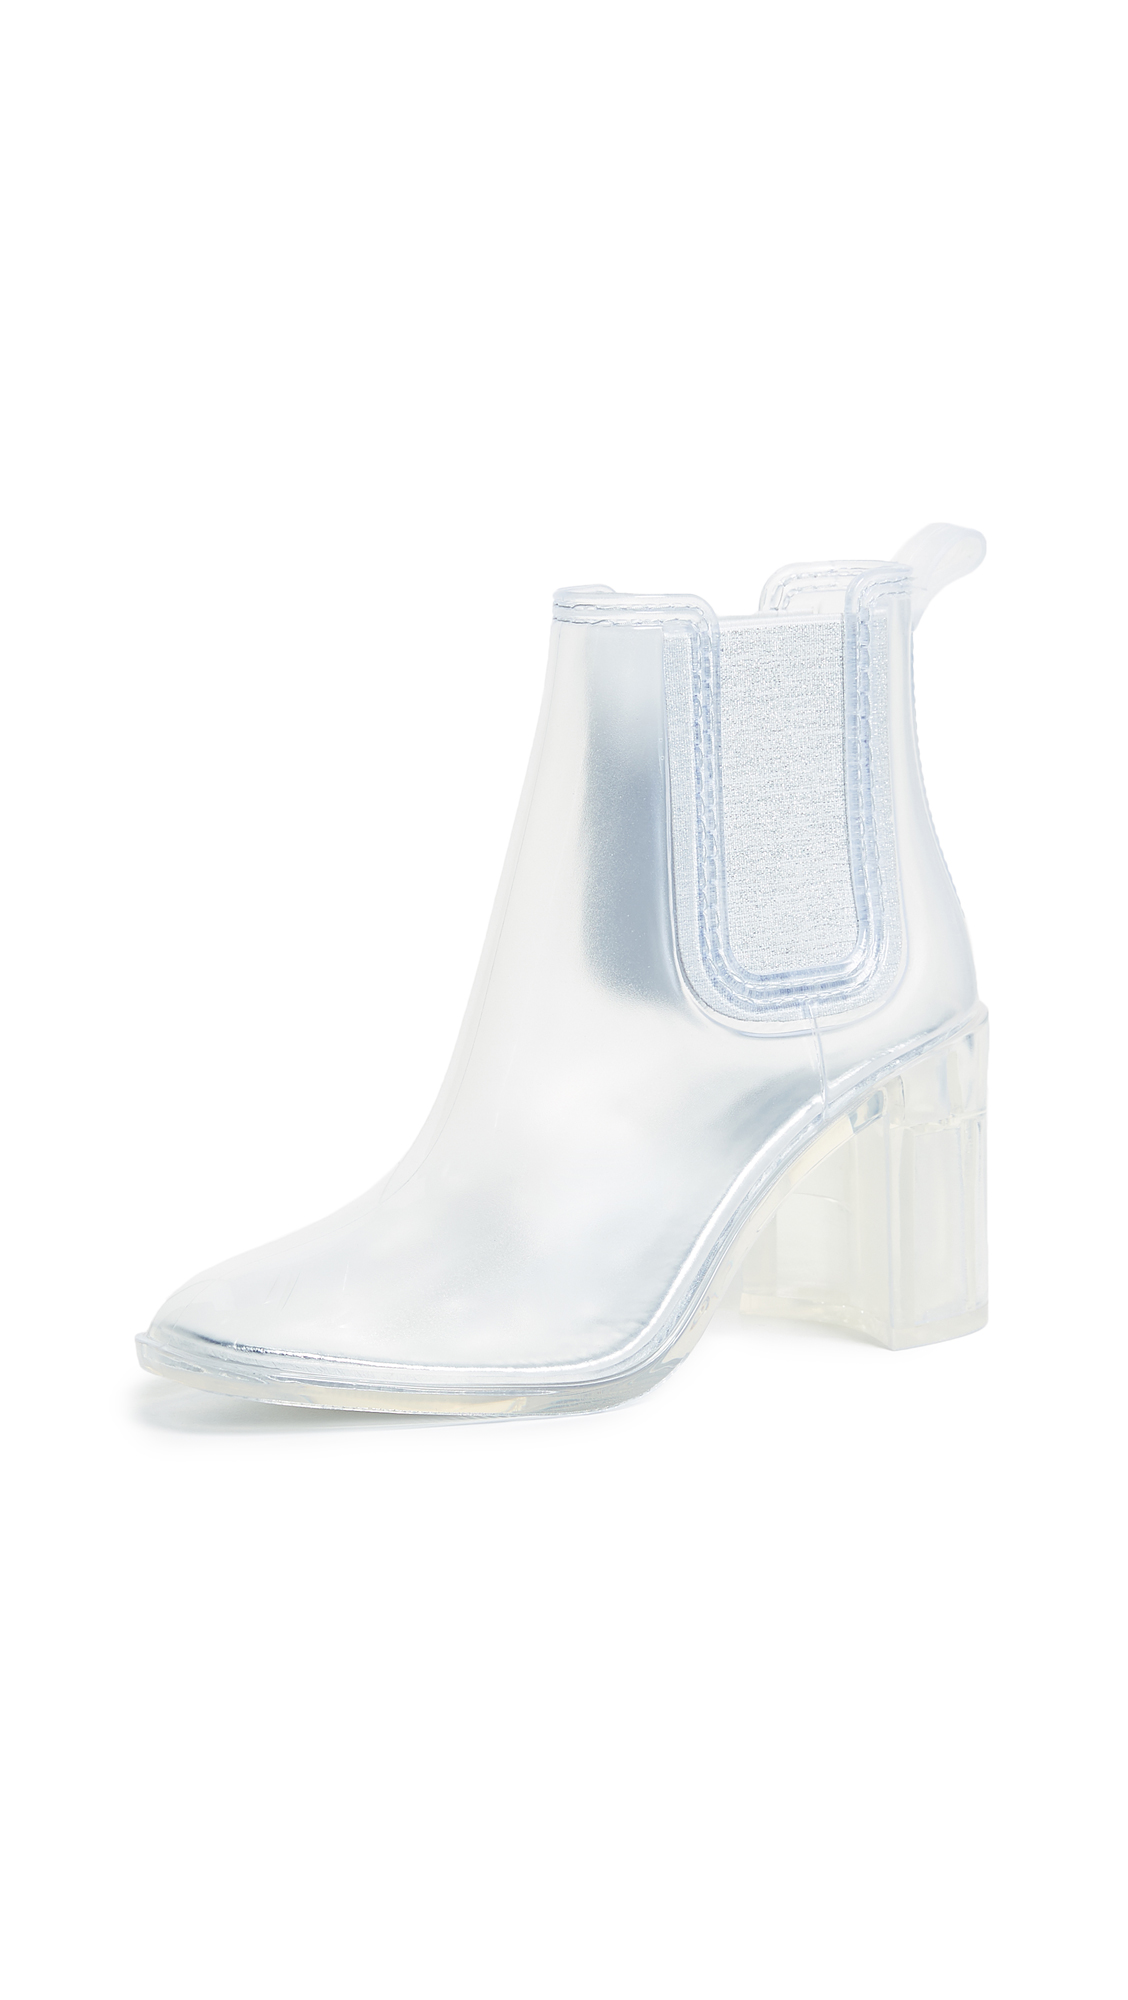 Jeffrey Campbell Hurricane Rain Booties - Clear